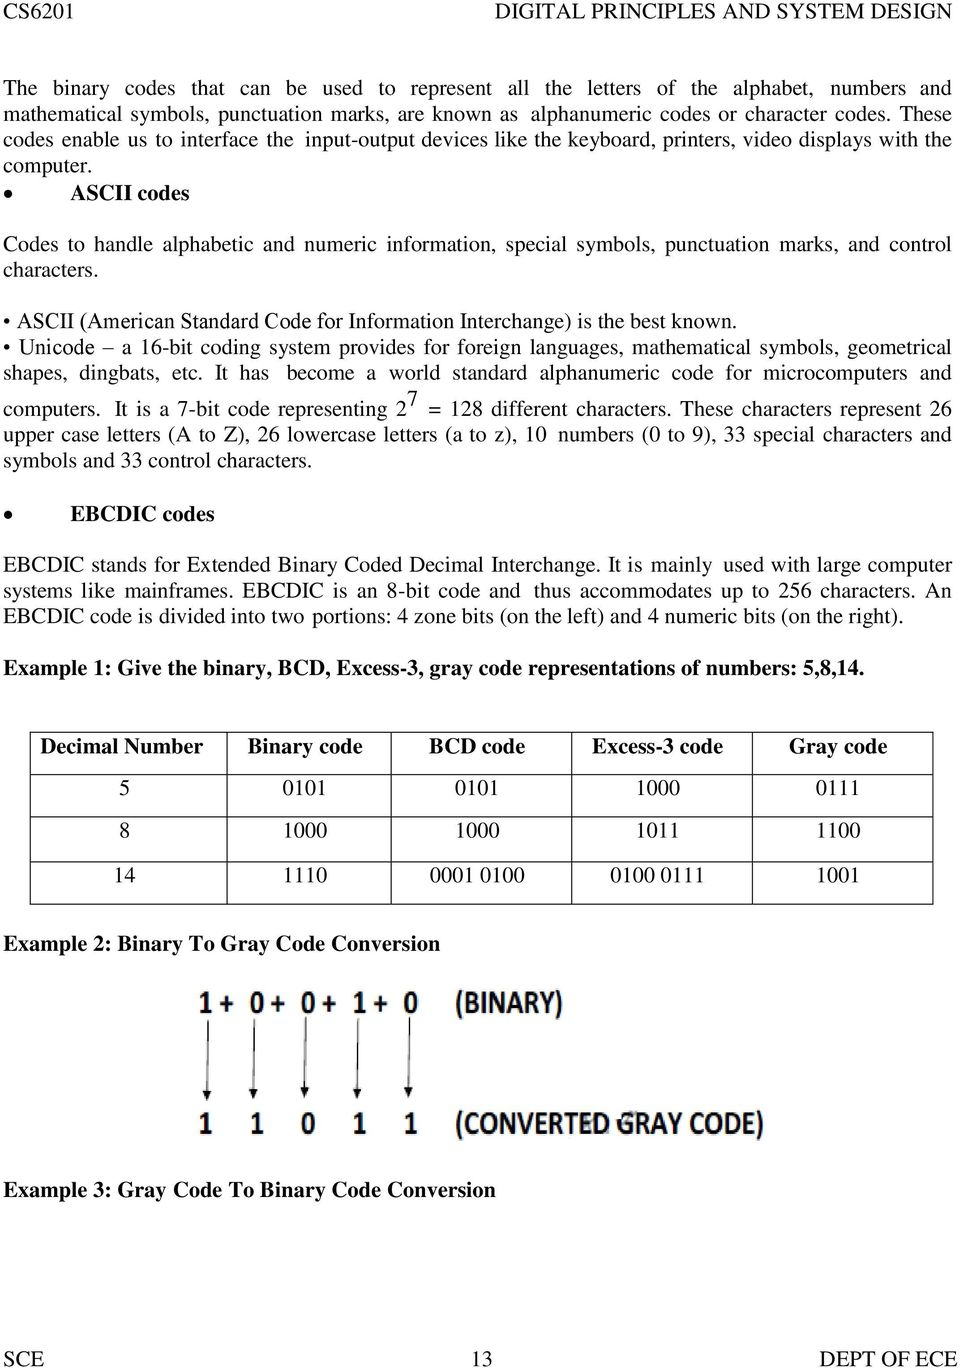 A Course Material On Digital Principles And System Design Pdf Logic Family Integrated Circuit Gates Below Label The Maxterm Diagram Ascii Codes To Handle Alphabetic Numeric Information Special Symbols Punctuation Marks